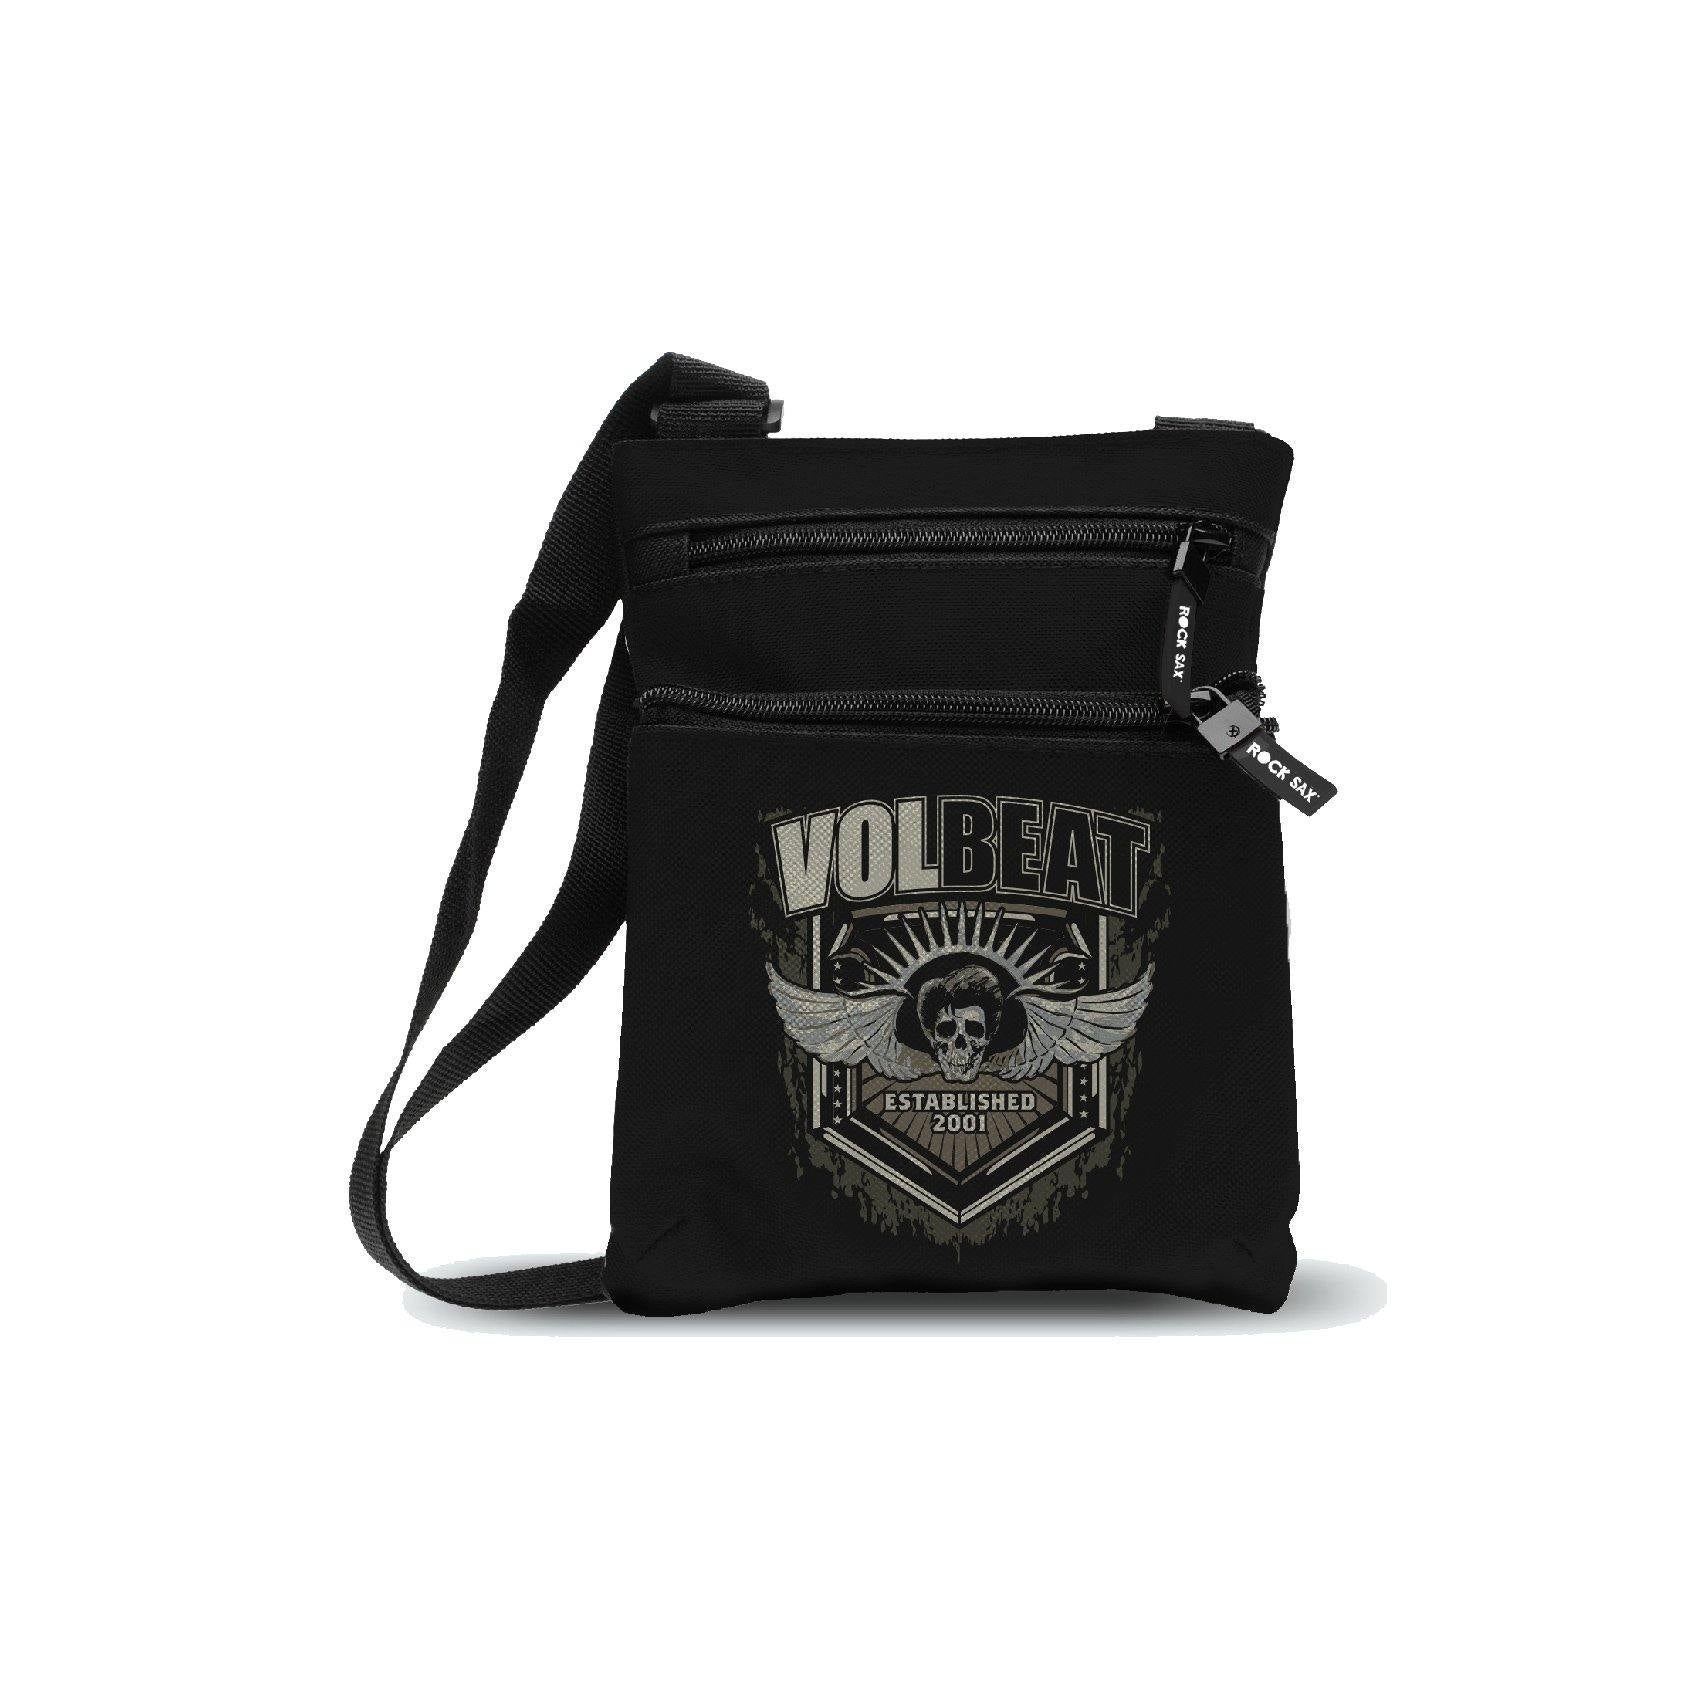 Volbeat Body Bag - Established - DadiTude